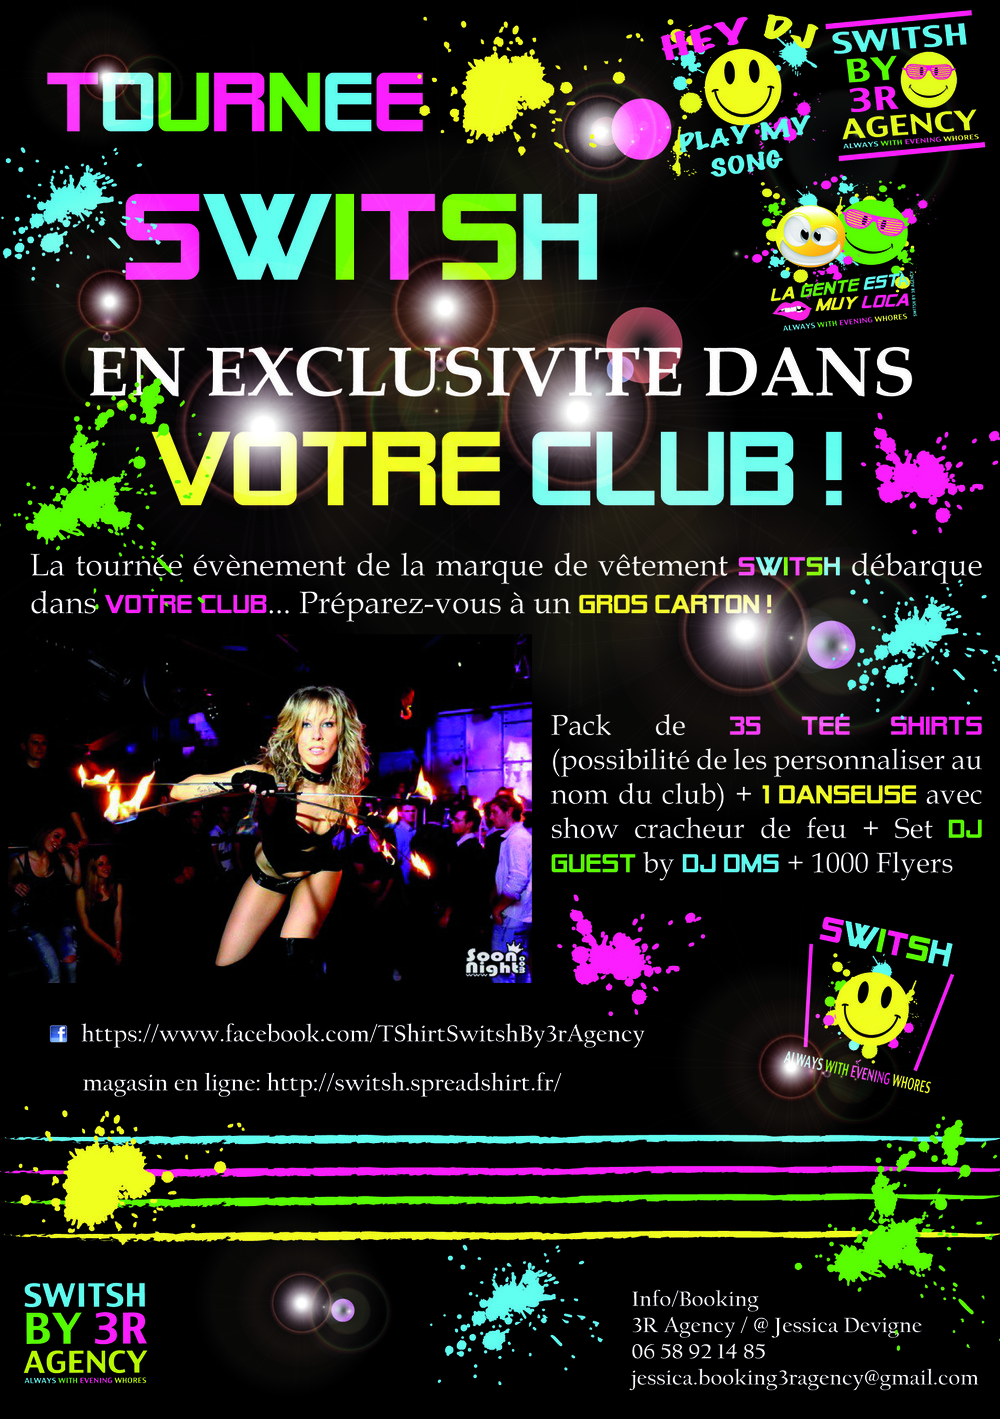 JD - Tournée Event Switsh pour 3R Agency